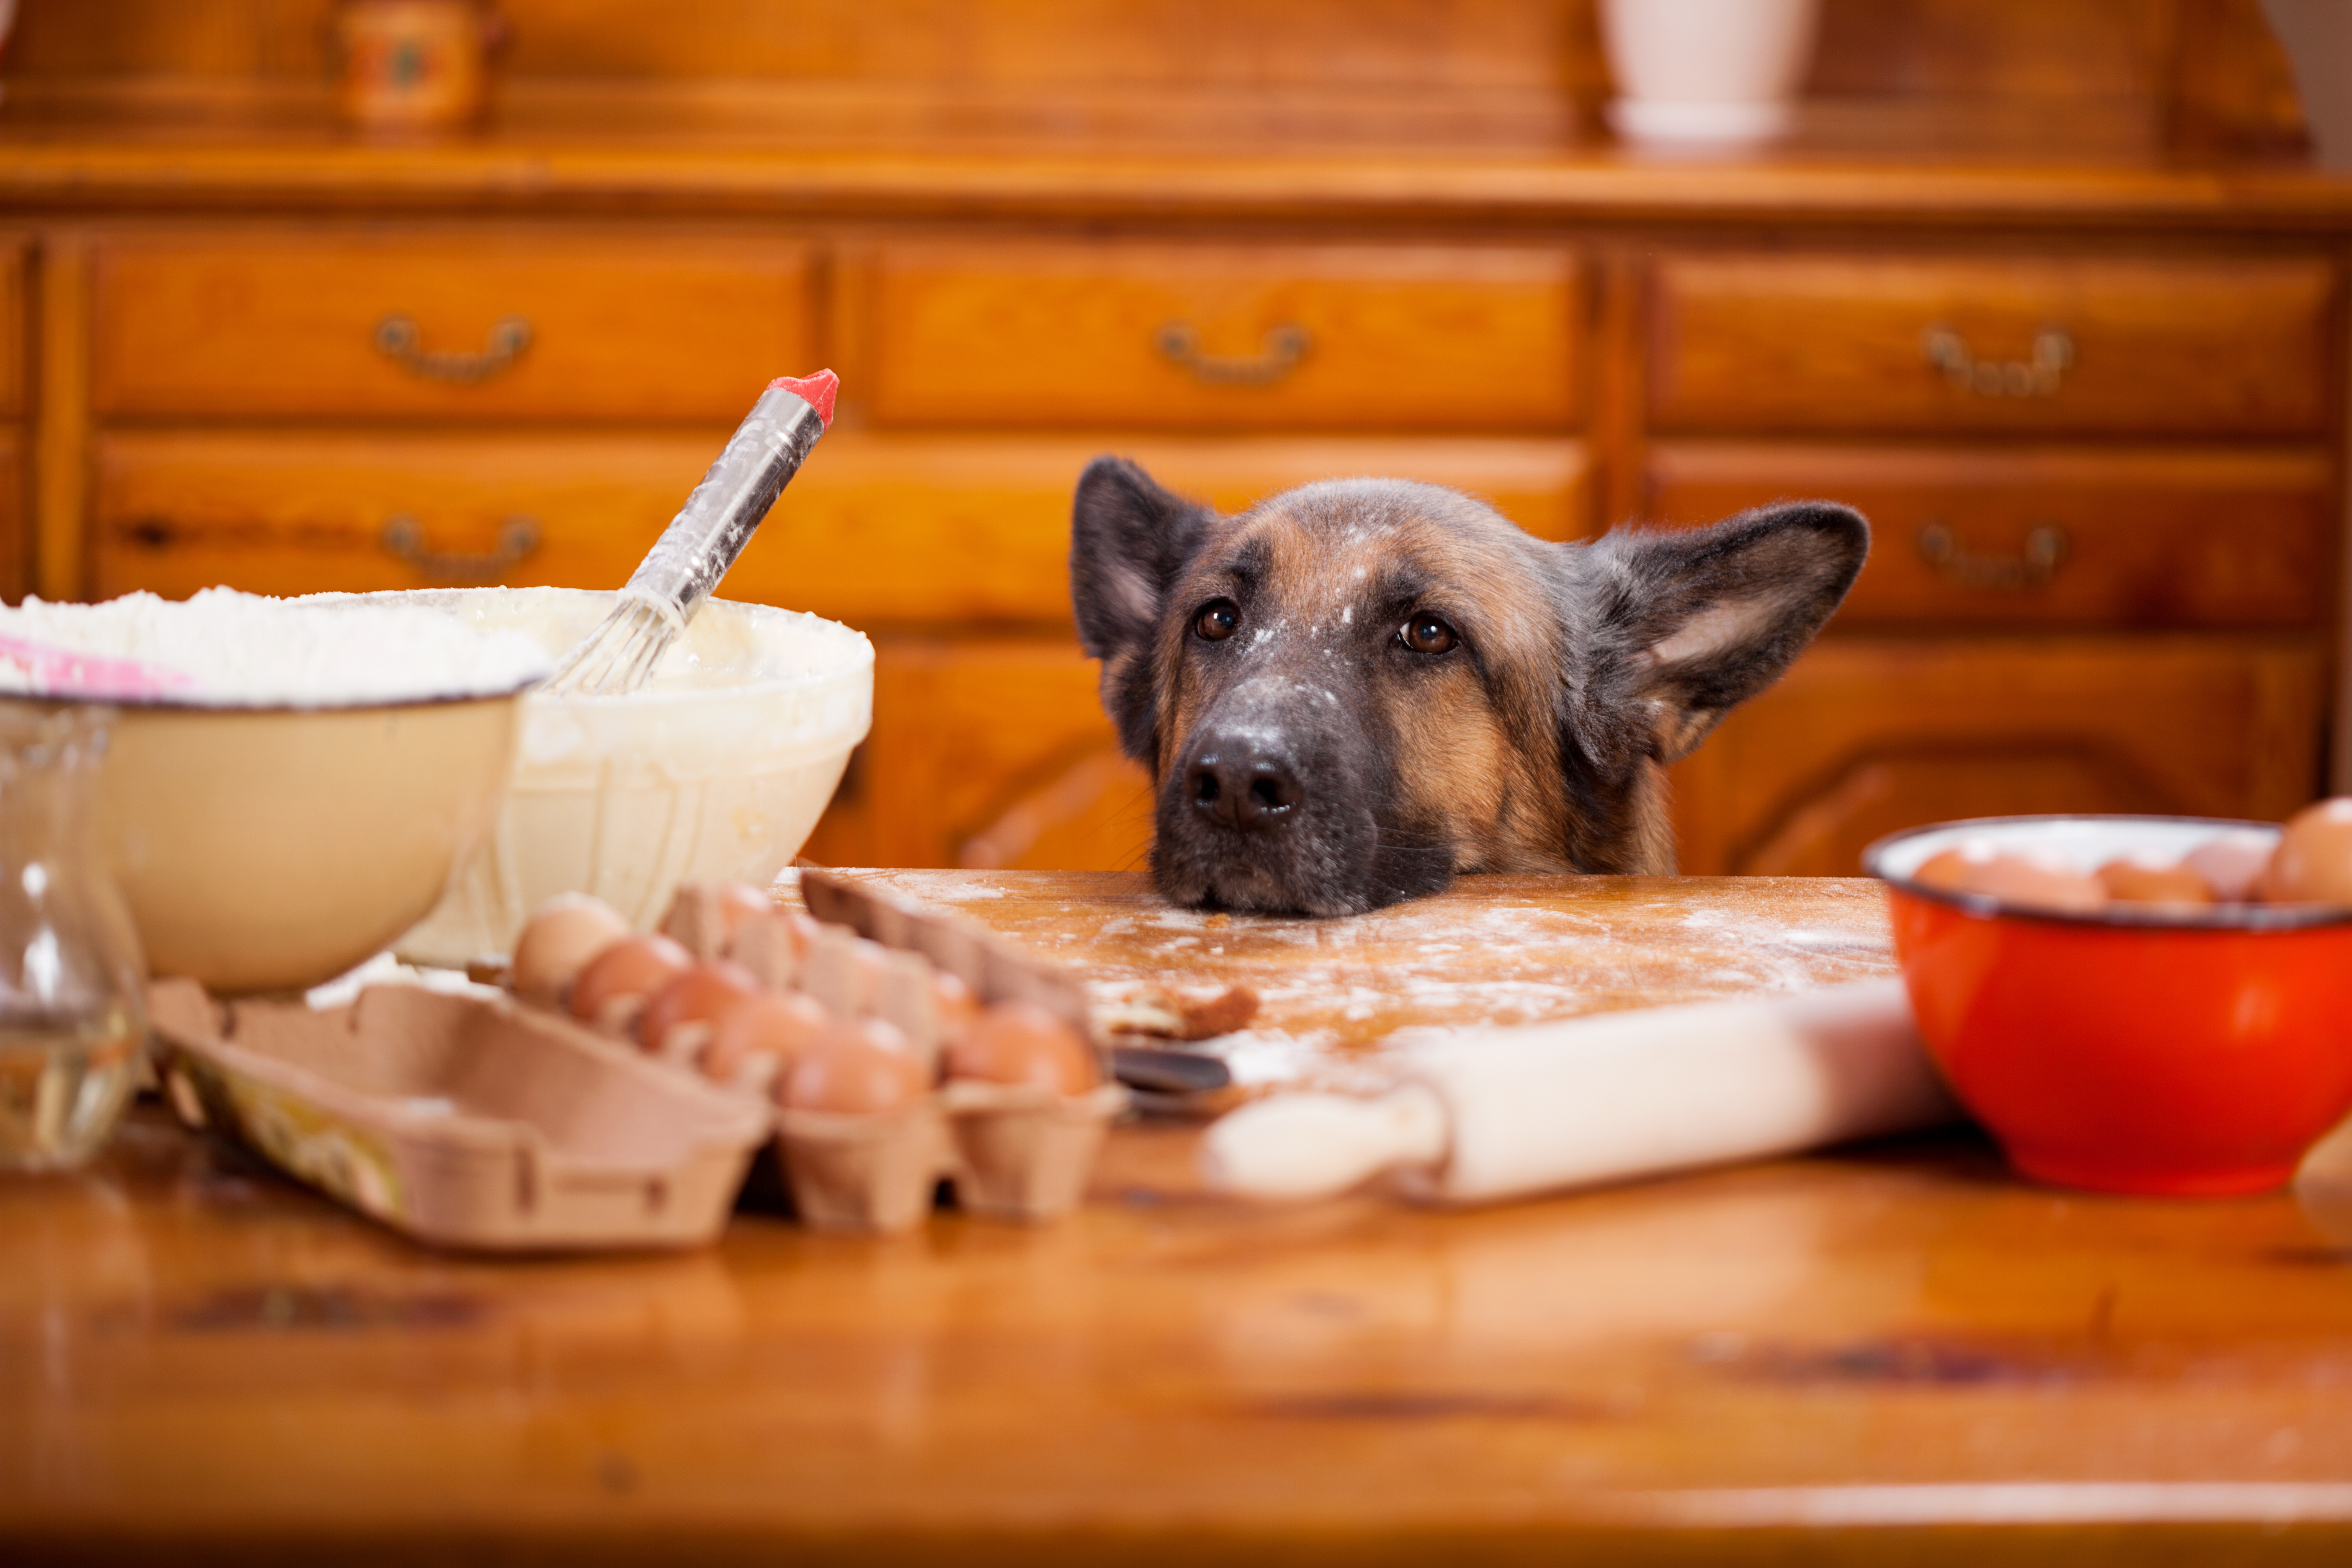 Big shepherd dog stealing from table in the kitchen